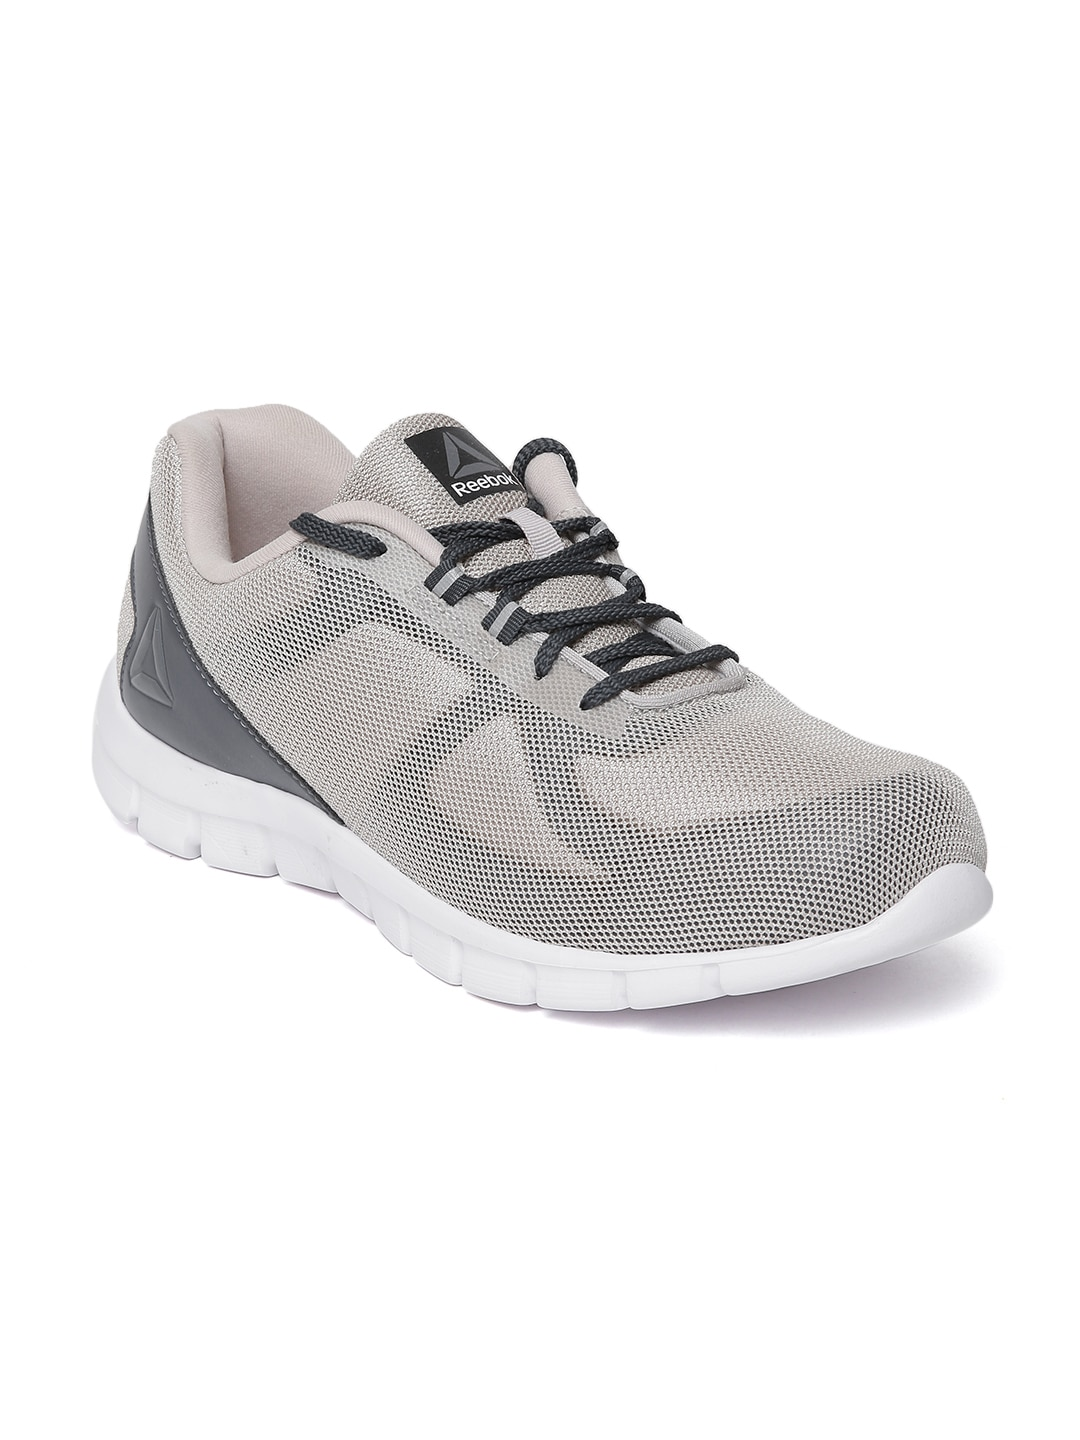 342a71ebe0d Sports Shoes for Men - Buy Men Sports Shoes Online in India - Myntra